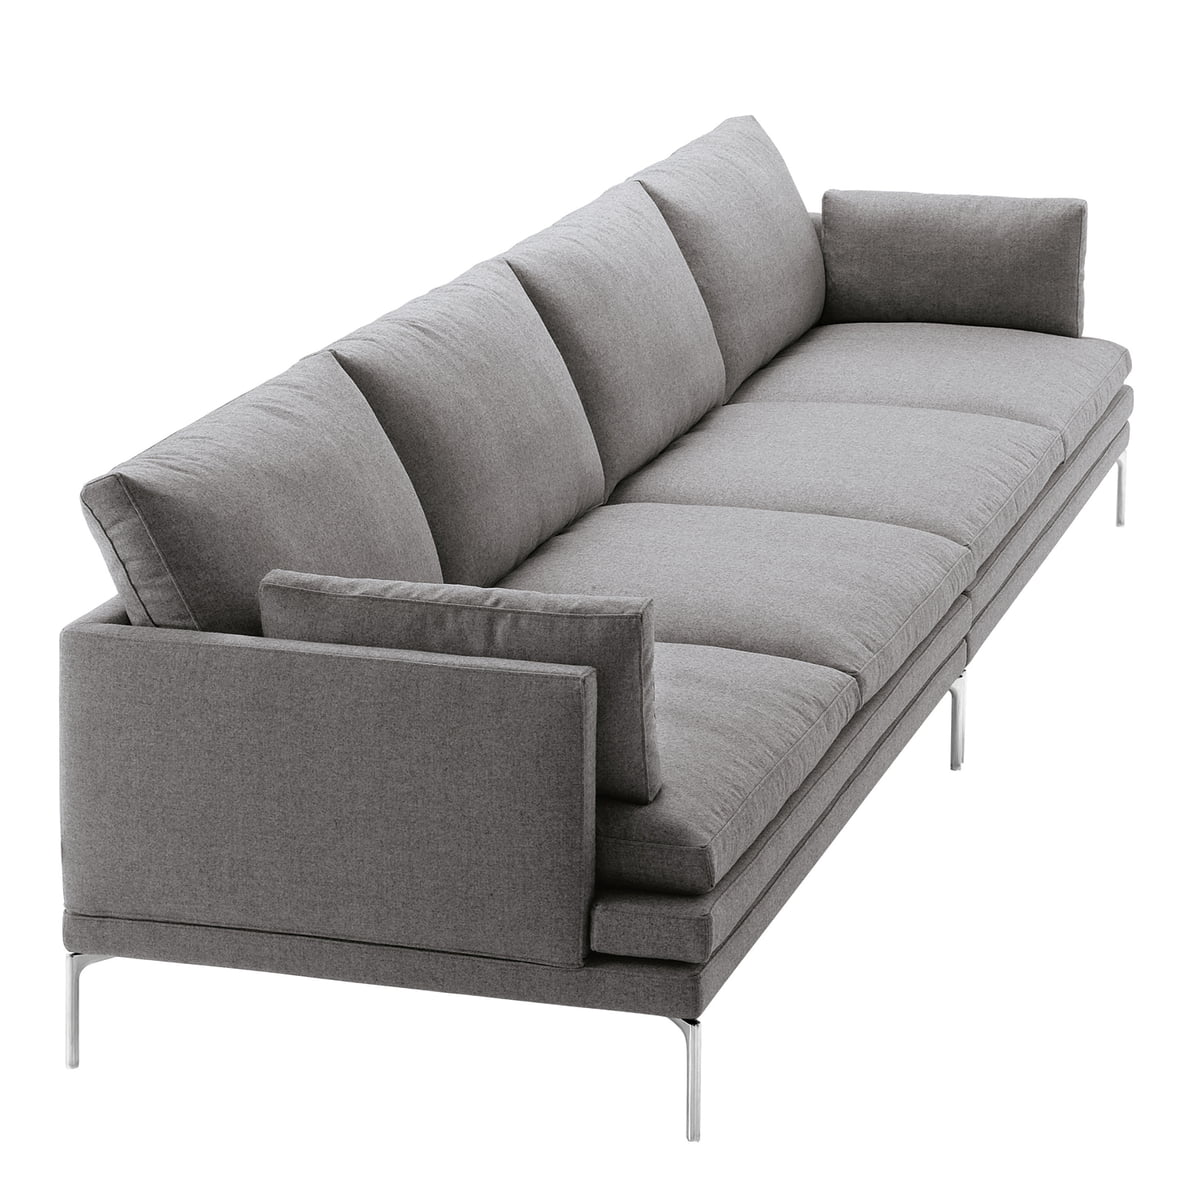 Image gallery sofas zanotta for Sofa 4 sitzer landhausstil